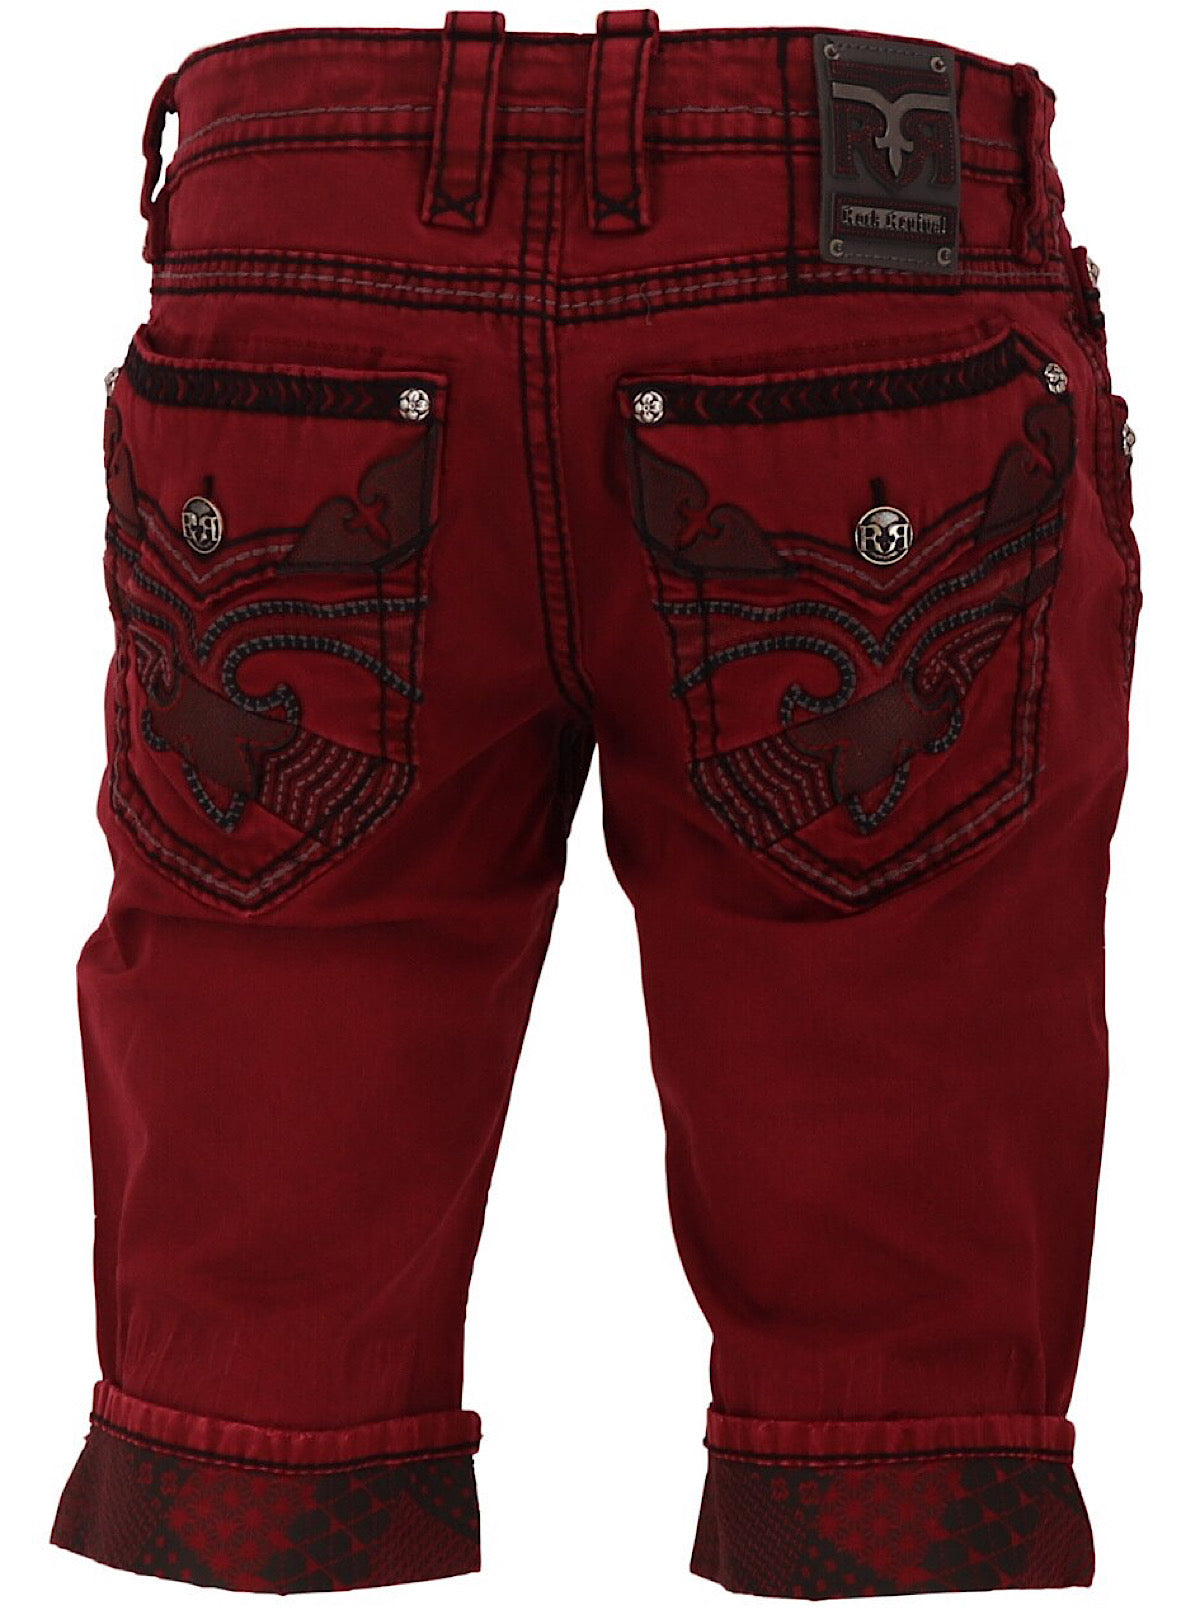 Rock Revival Denim Shorts - Crestmont H205 - Red